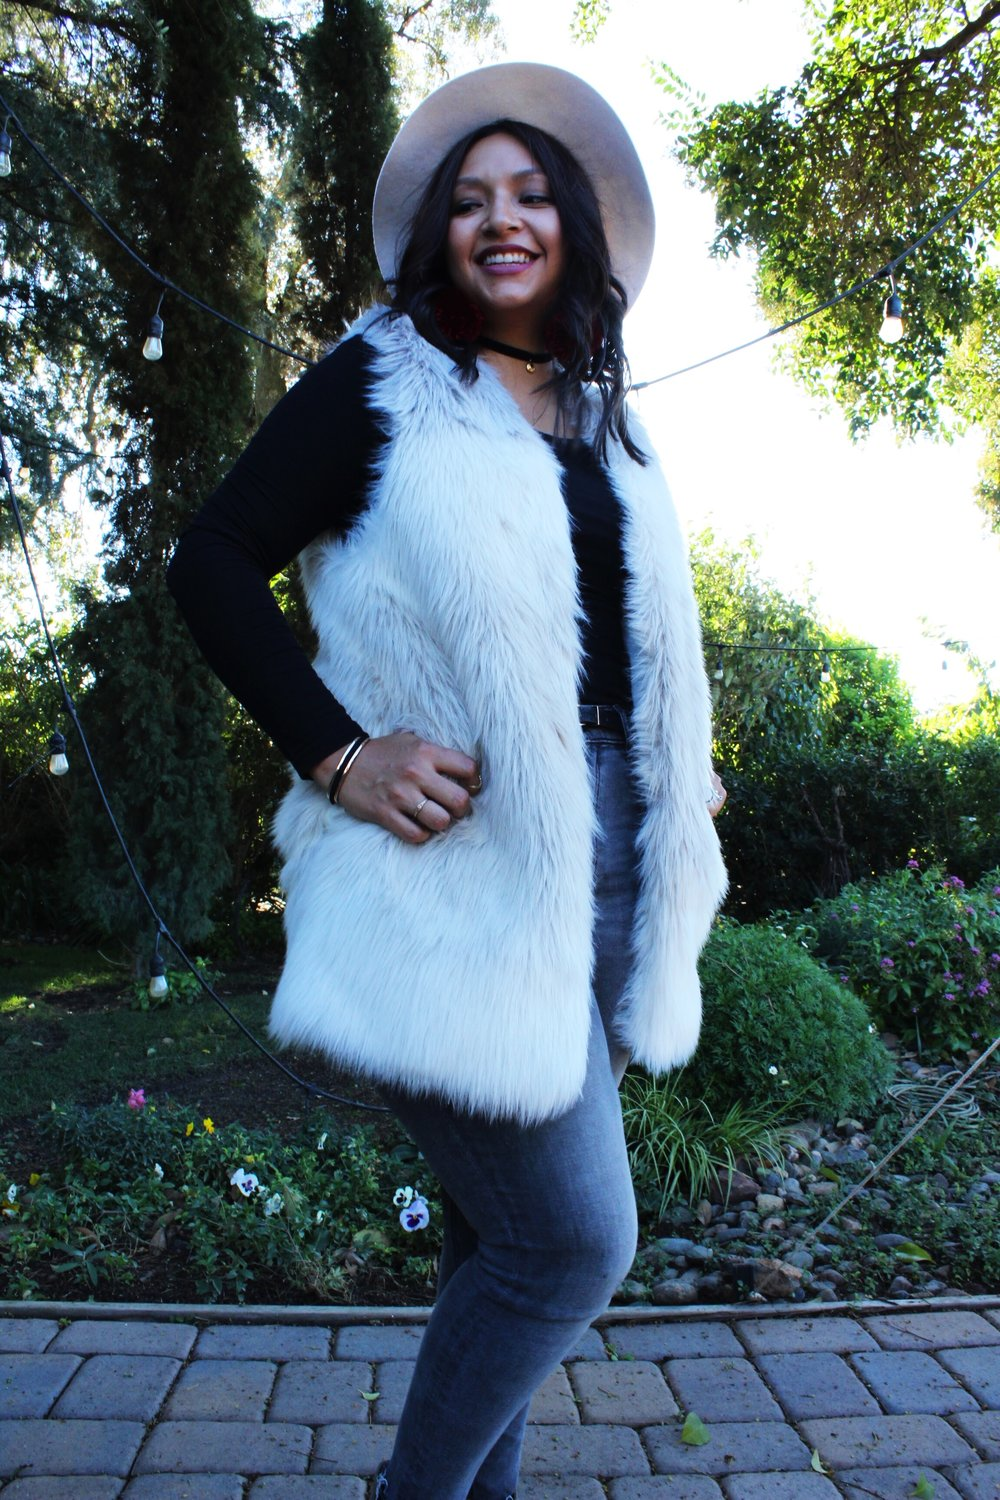 Wide brim fedora white fur jacket Lodi California winery